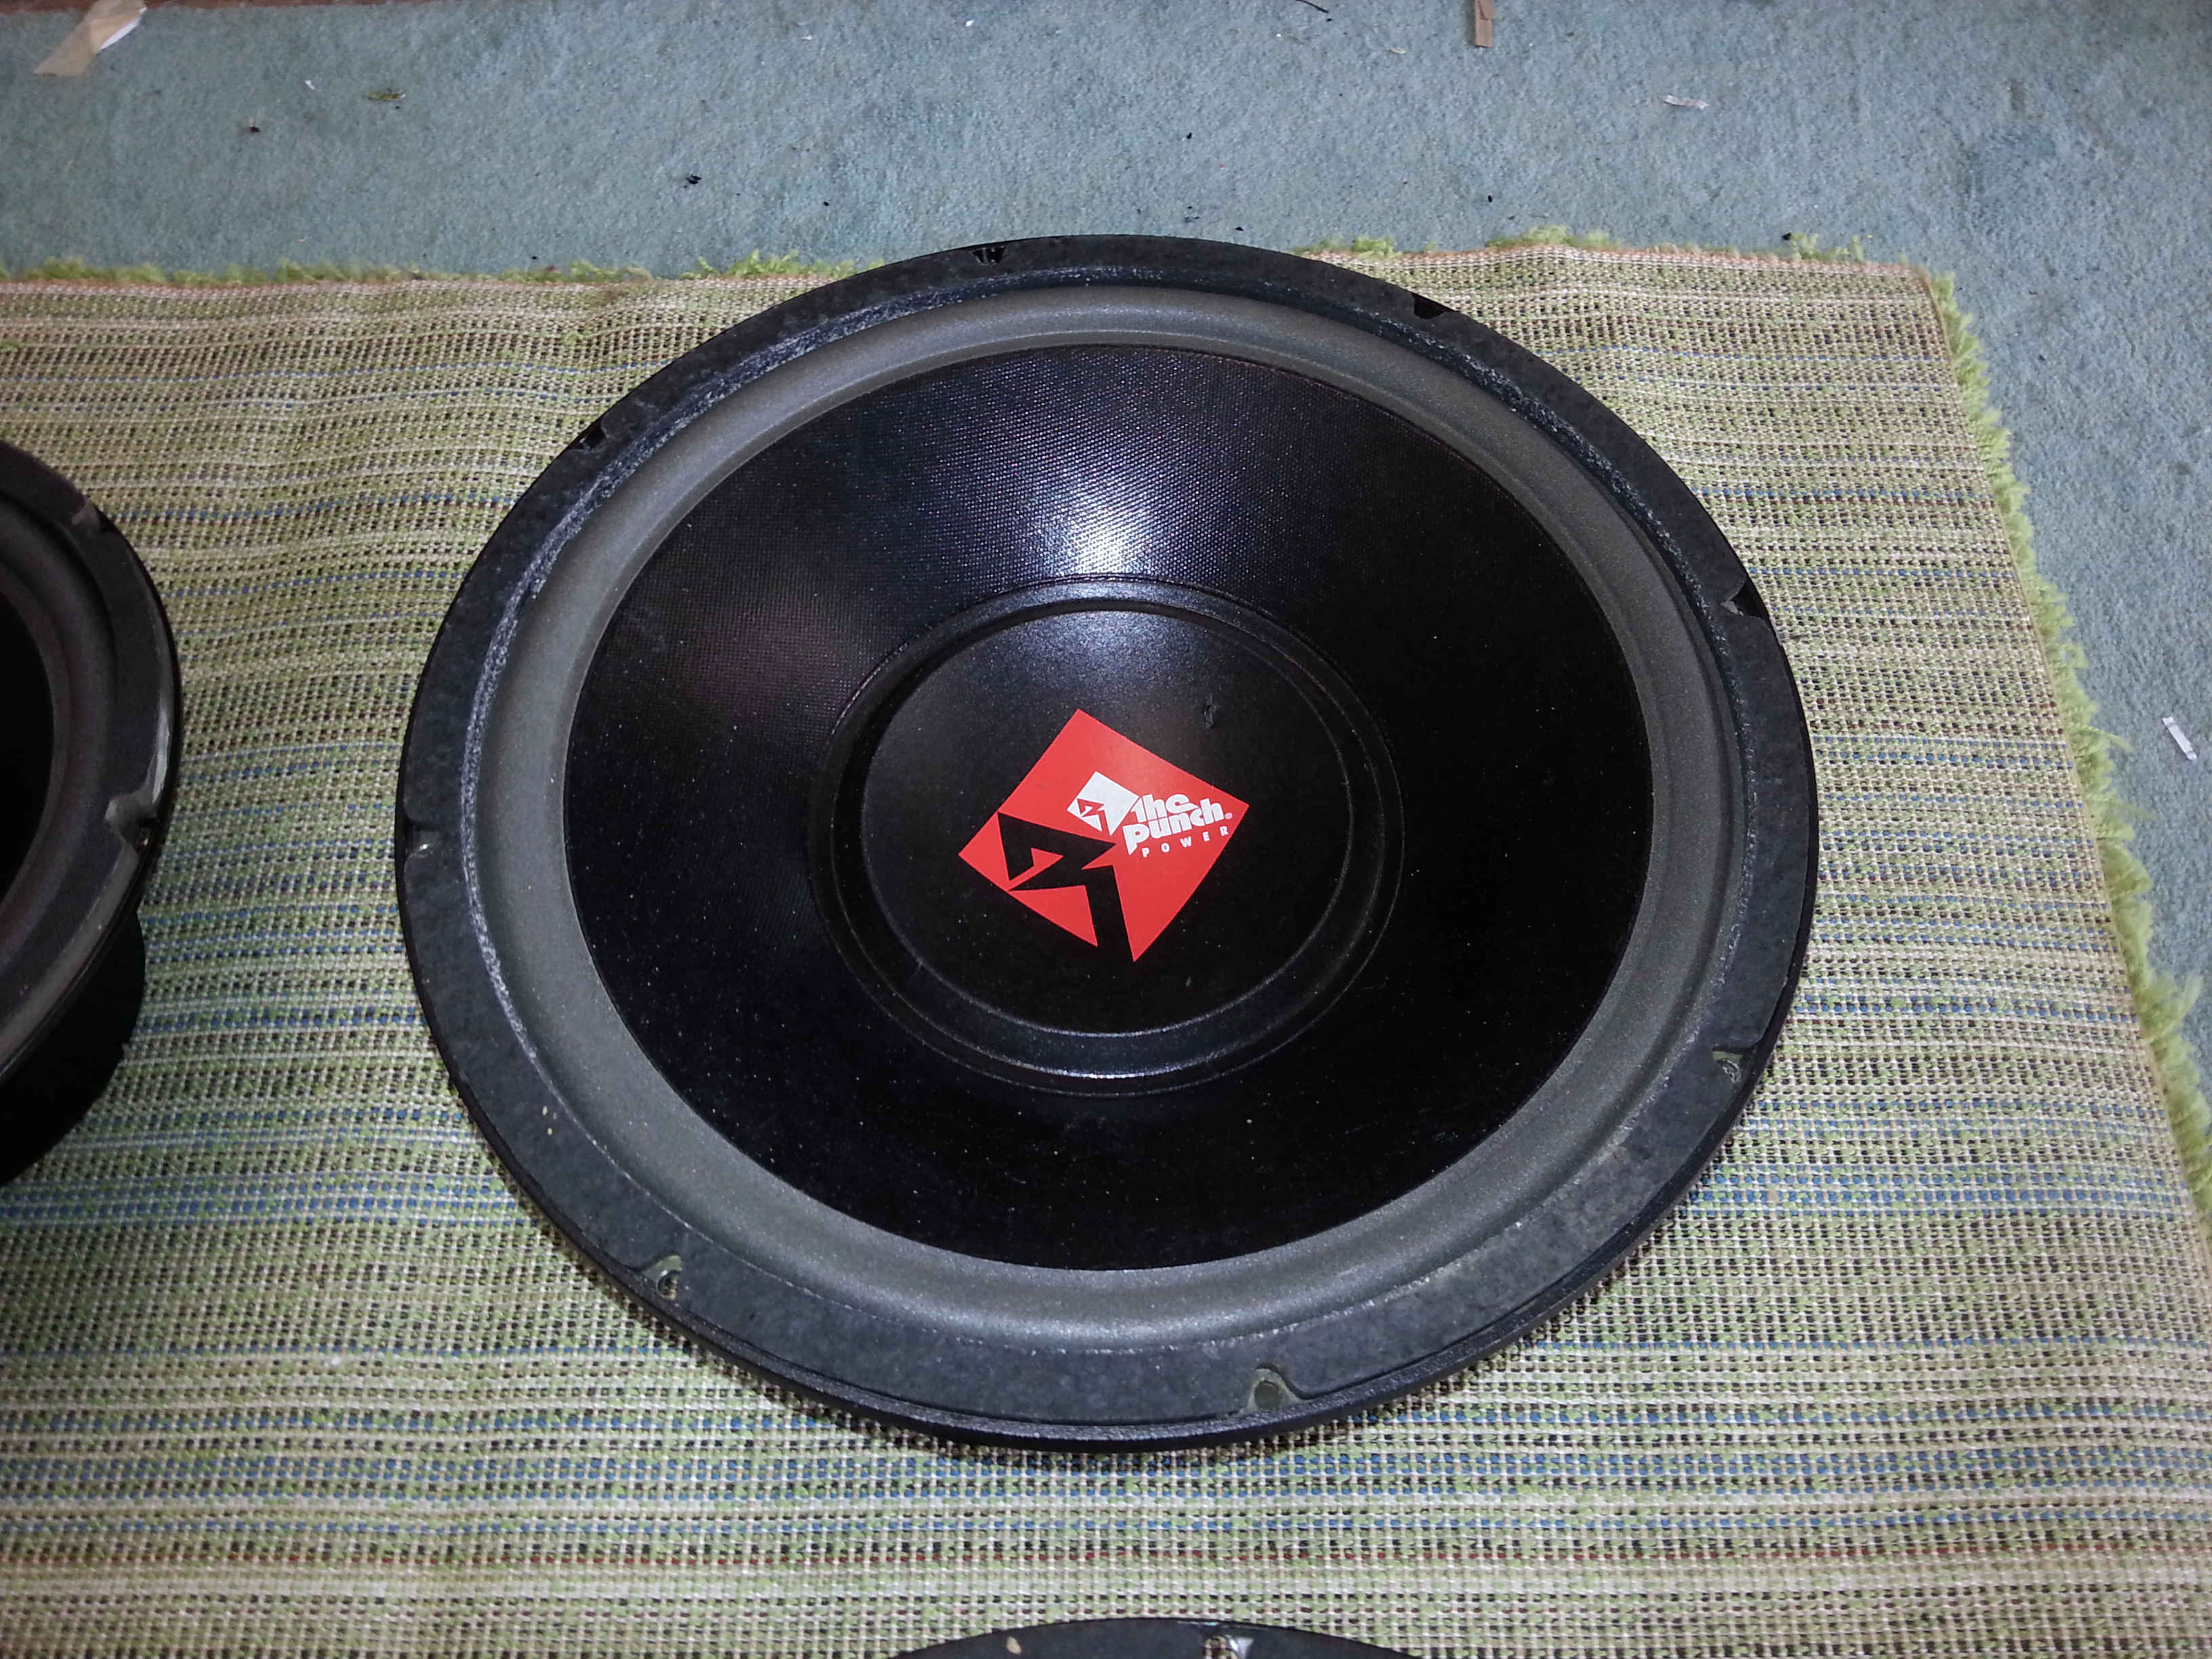 Retro Car Audio Speakers Rockford Fosgate Hx2 12 Ts To Jl W6 Series 1 Subs Weve Refoamed Them All So Dont Hesitate Contact Us If You Wish Give Your Cherished A New